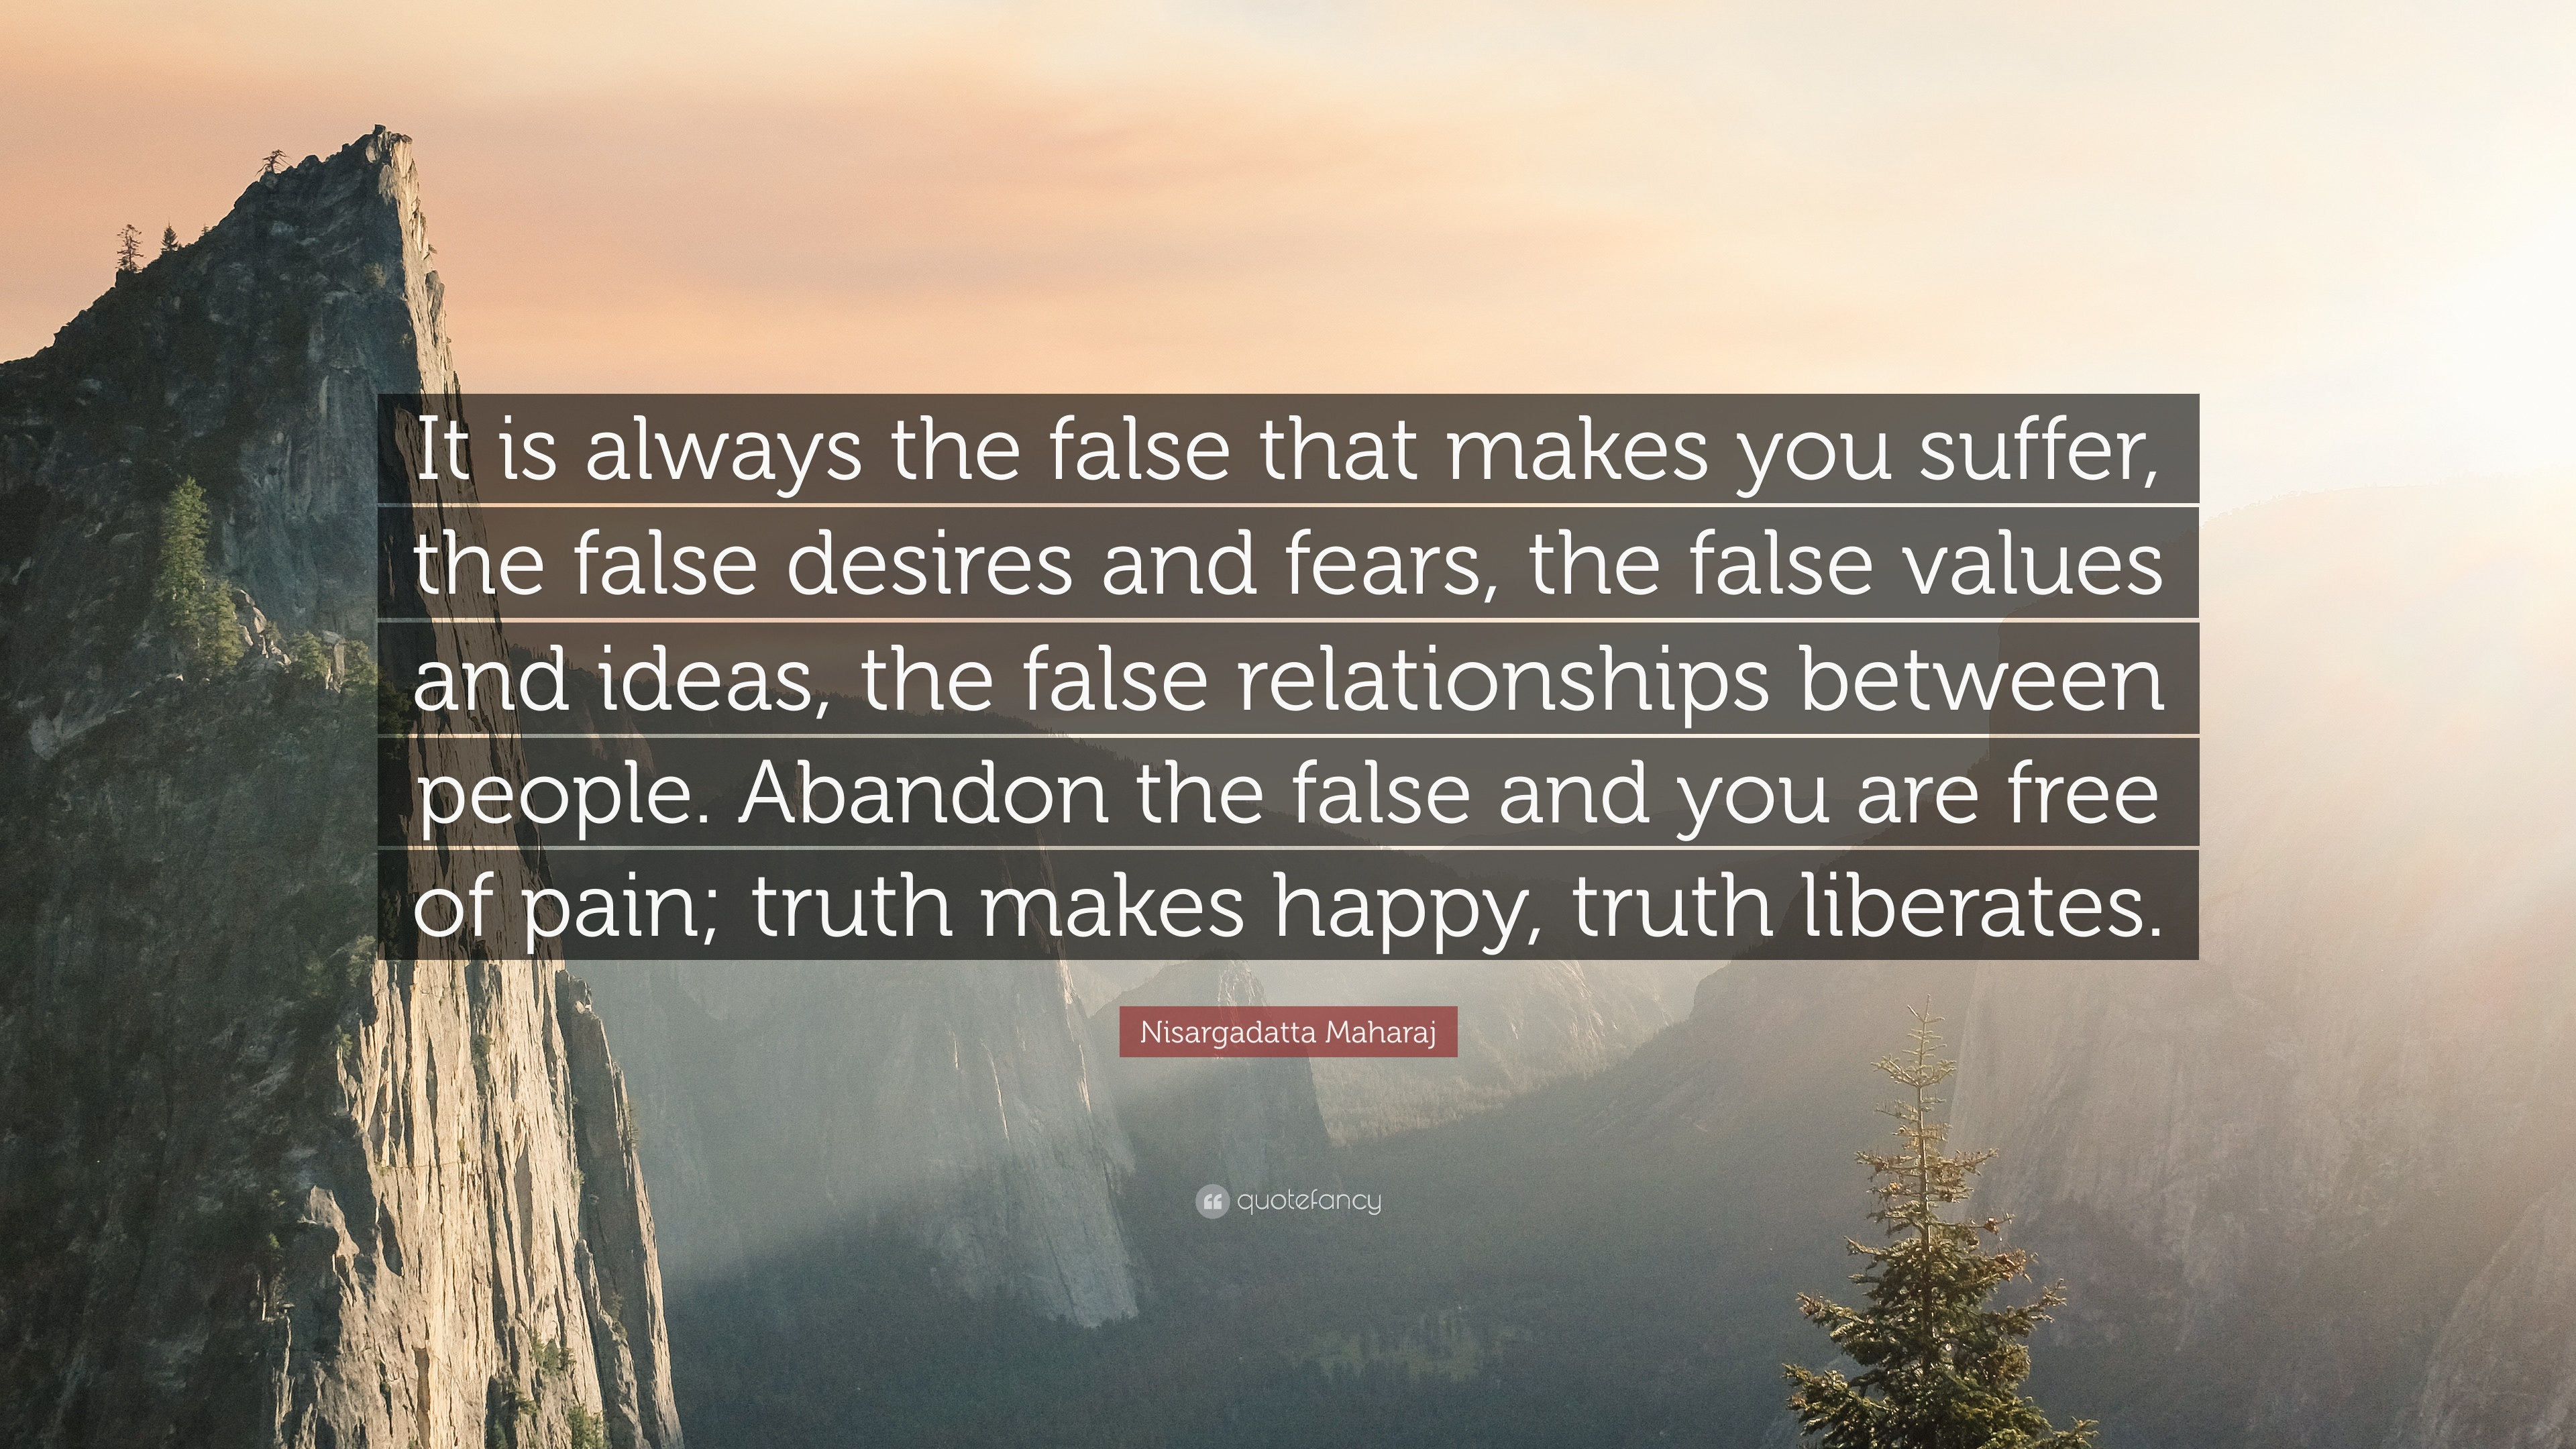 Nisargadatta Maharaj Quote It Is Always The False That Makes You Suffer The False Desires And Fears The False Values And Ideas The False Relatio 12 Wallpapers Quotefancy